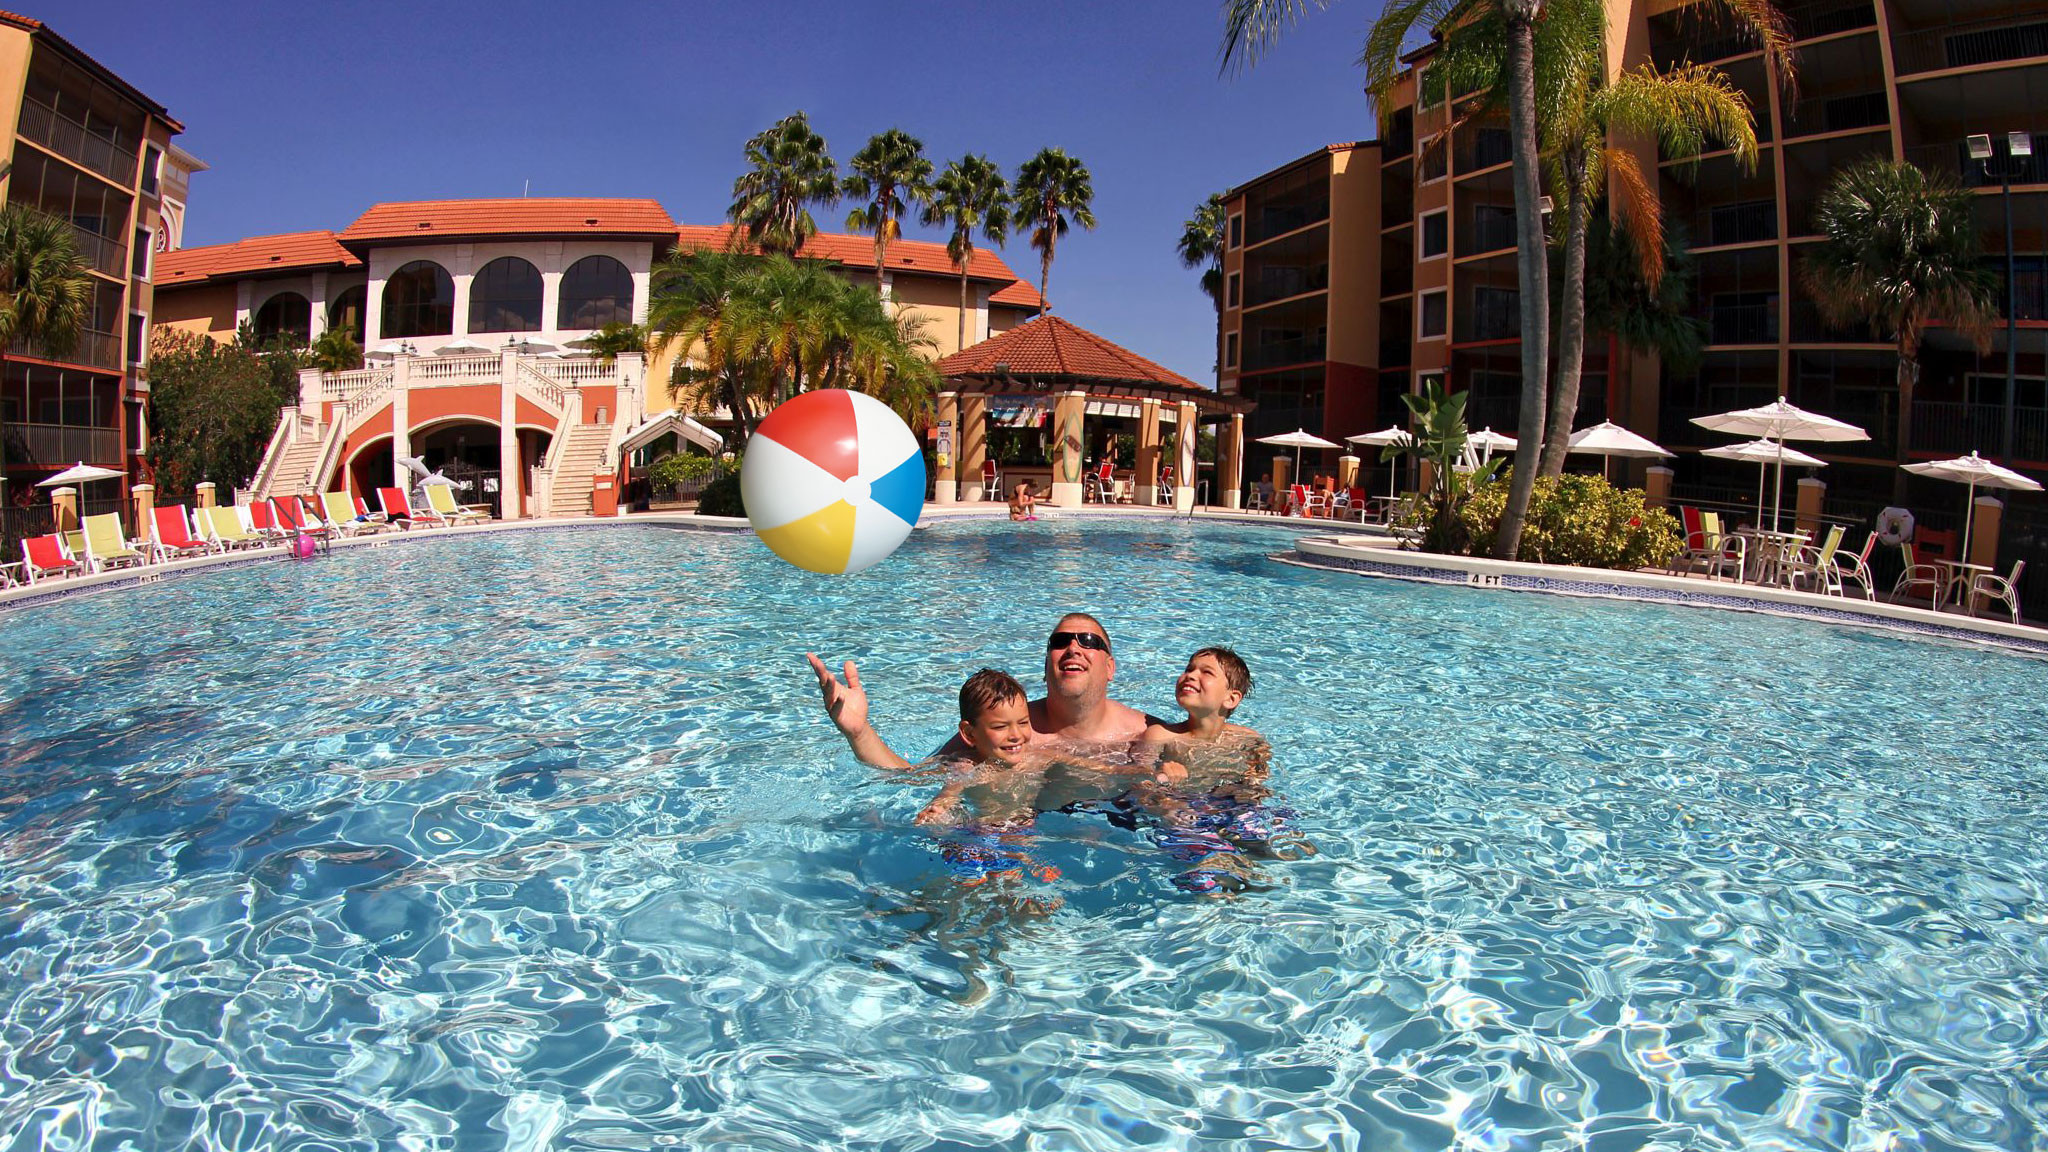 Family having fun at our resort near you! | Looking for a resort nearby? Experience Westgate Resorts! the best resort destination close to theme parks and major attractions!